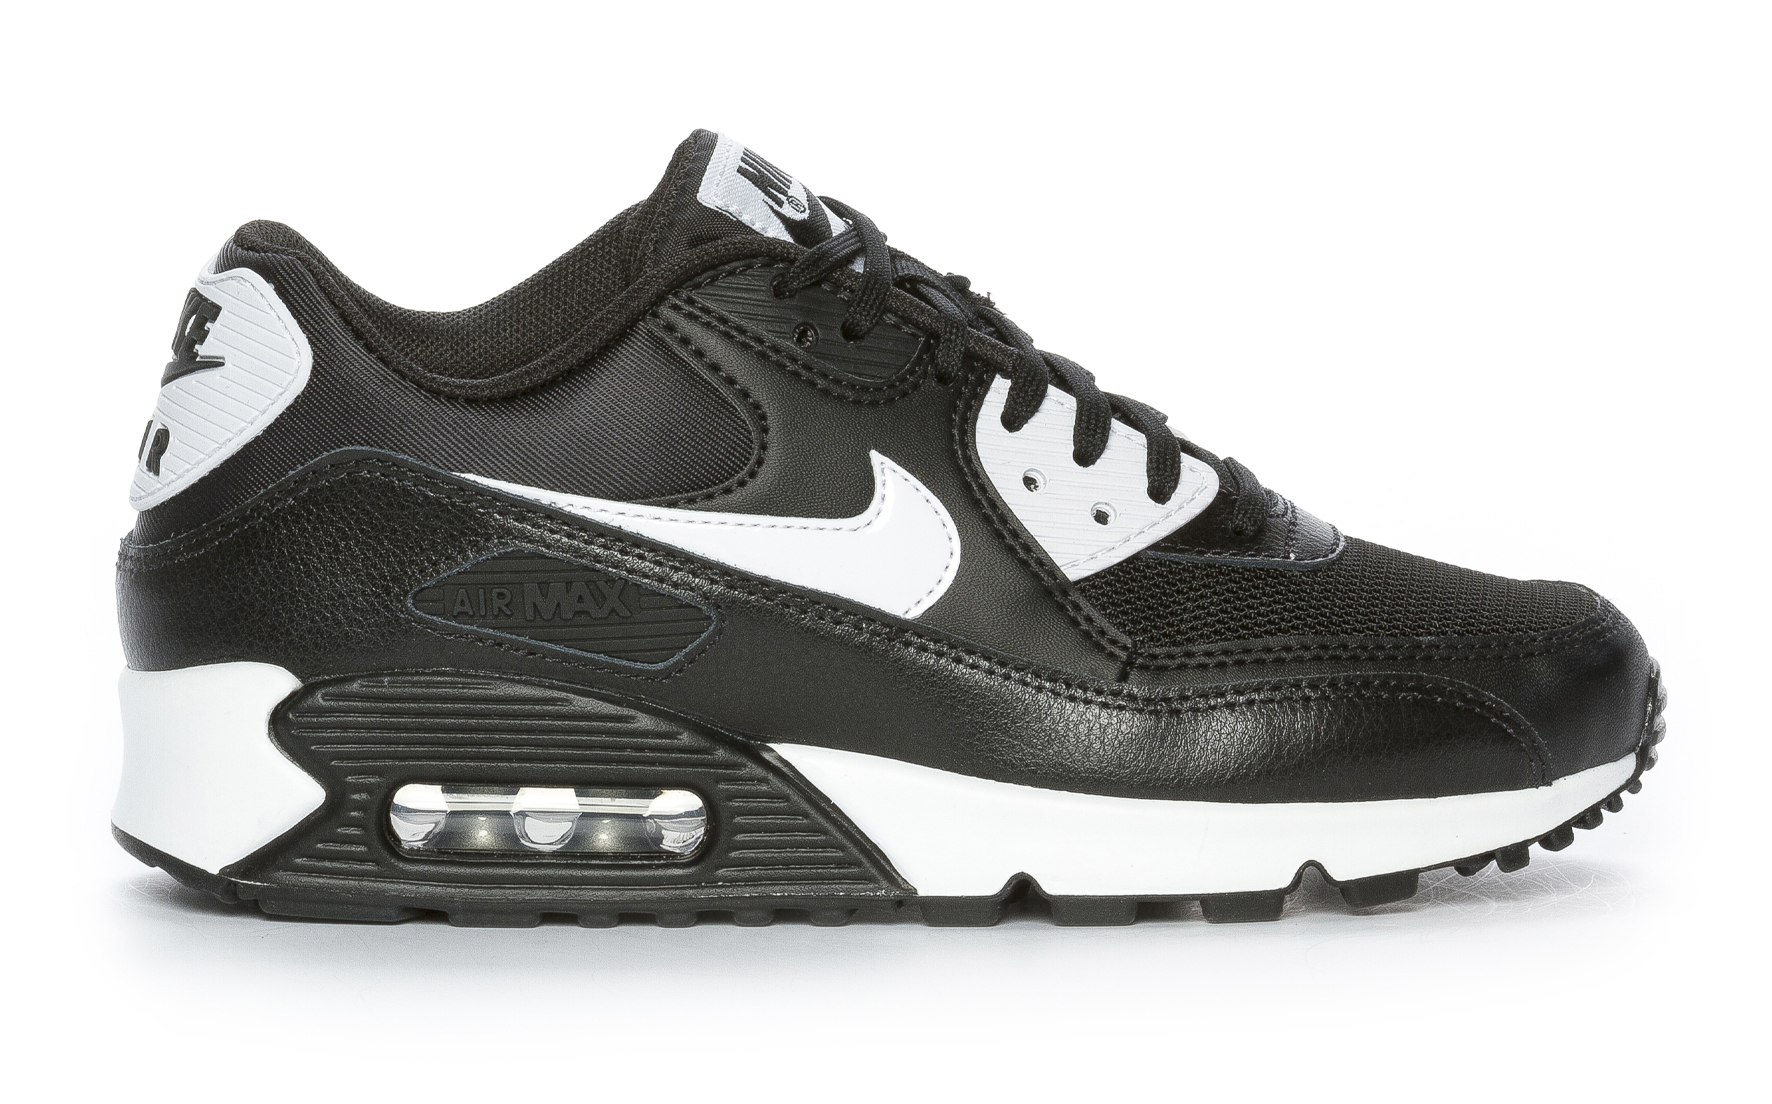 cheaper 2cc15 b7f81 Nike Air Max 90 Essential - Svarta 298129 feetfirst.se